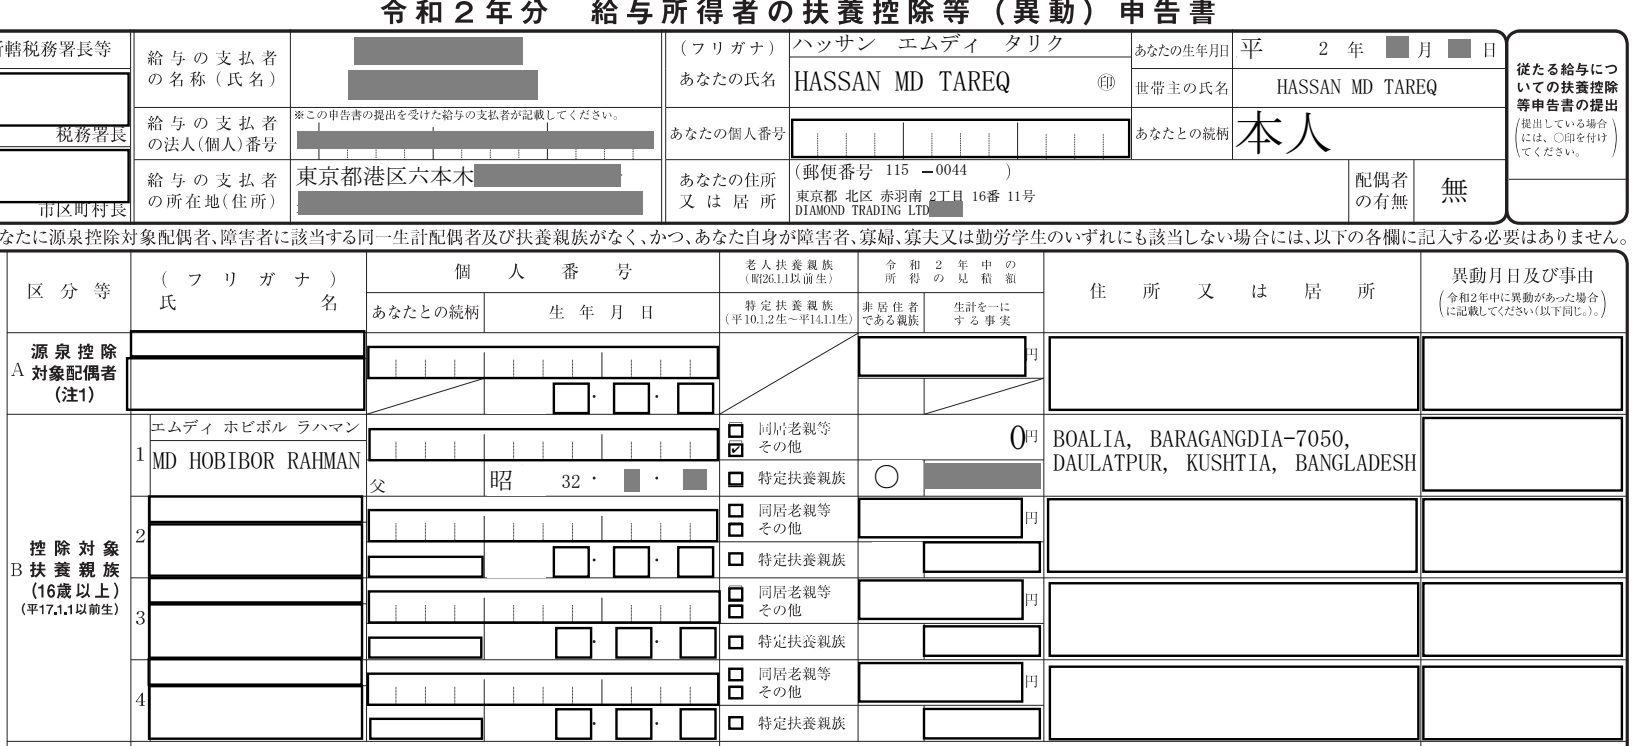 Sample of tax exemption for dependents declaration form